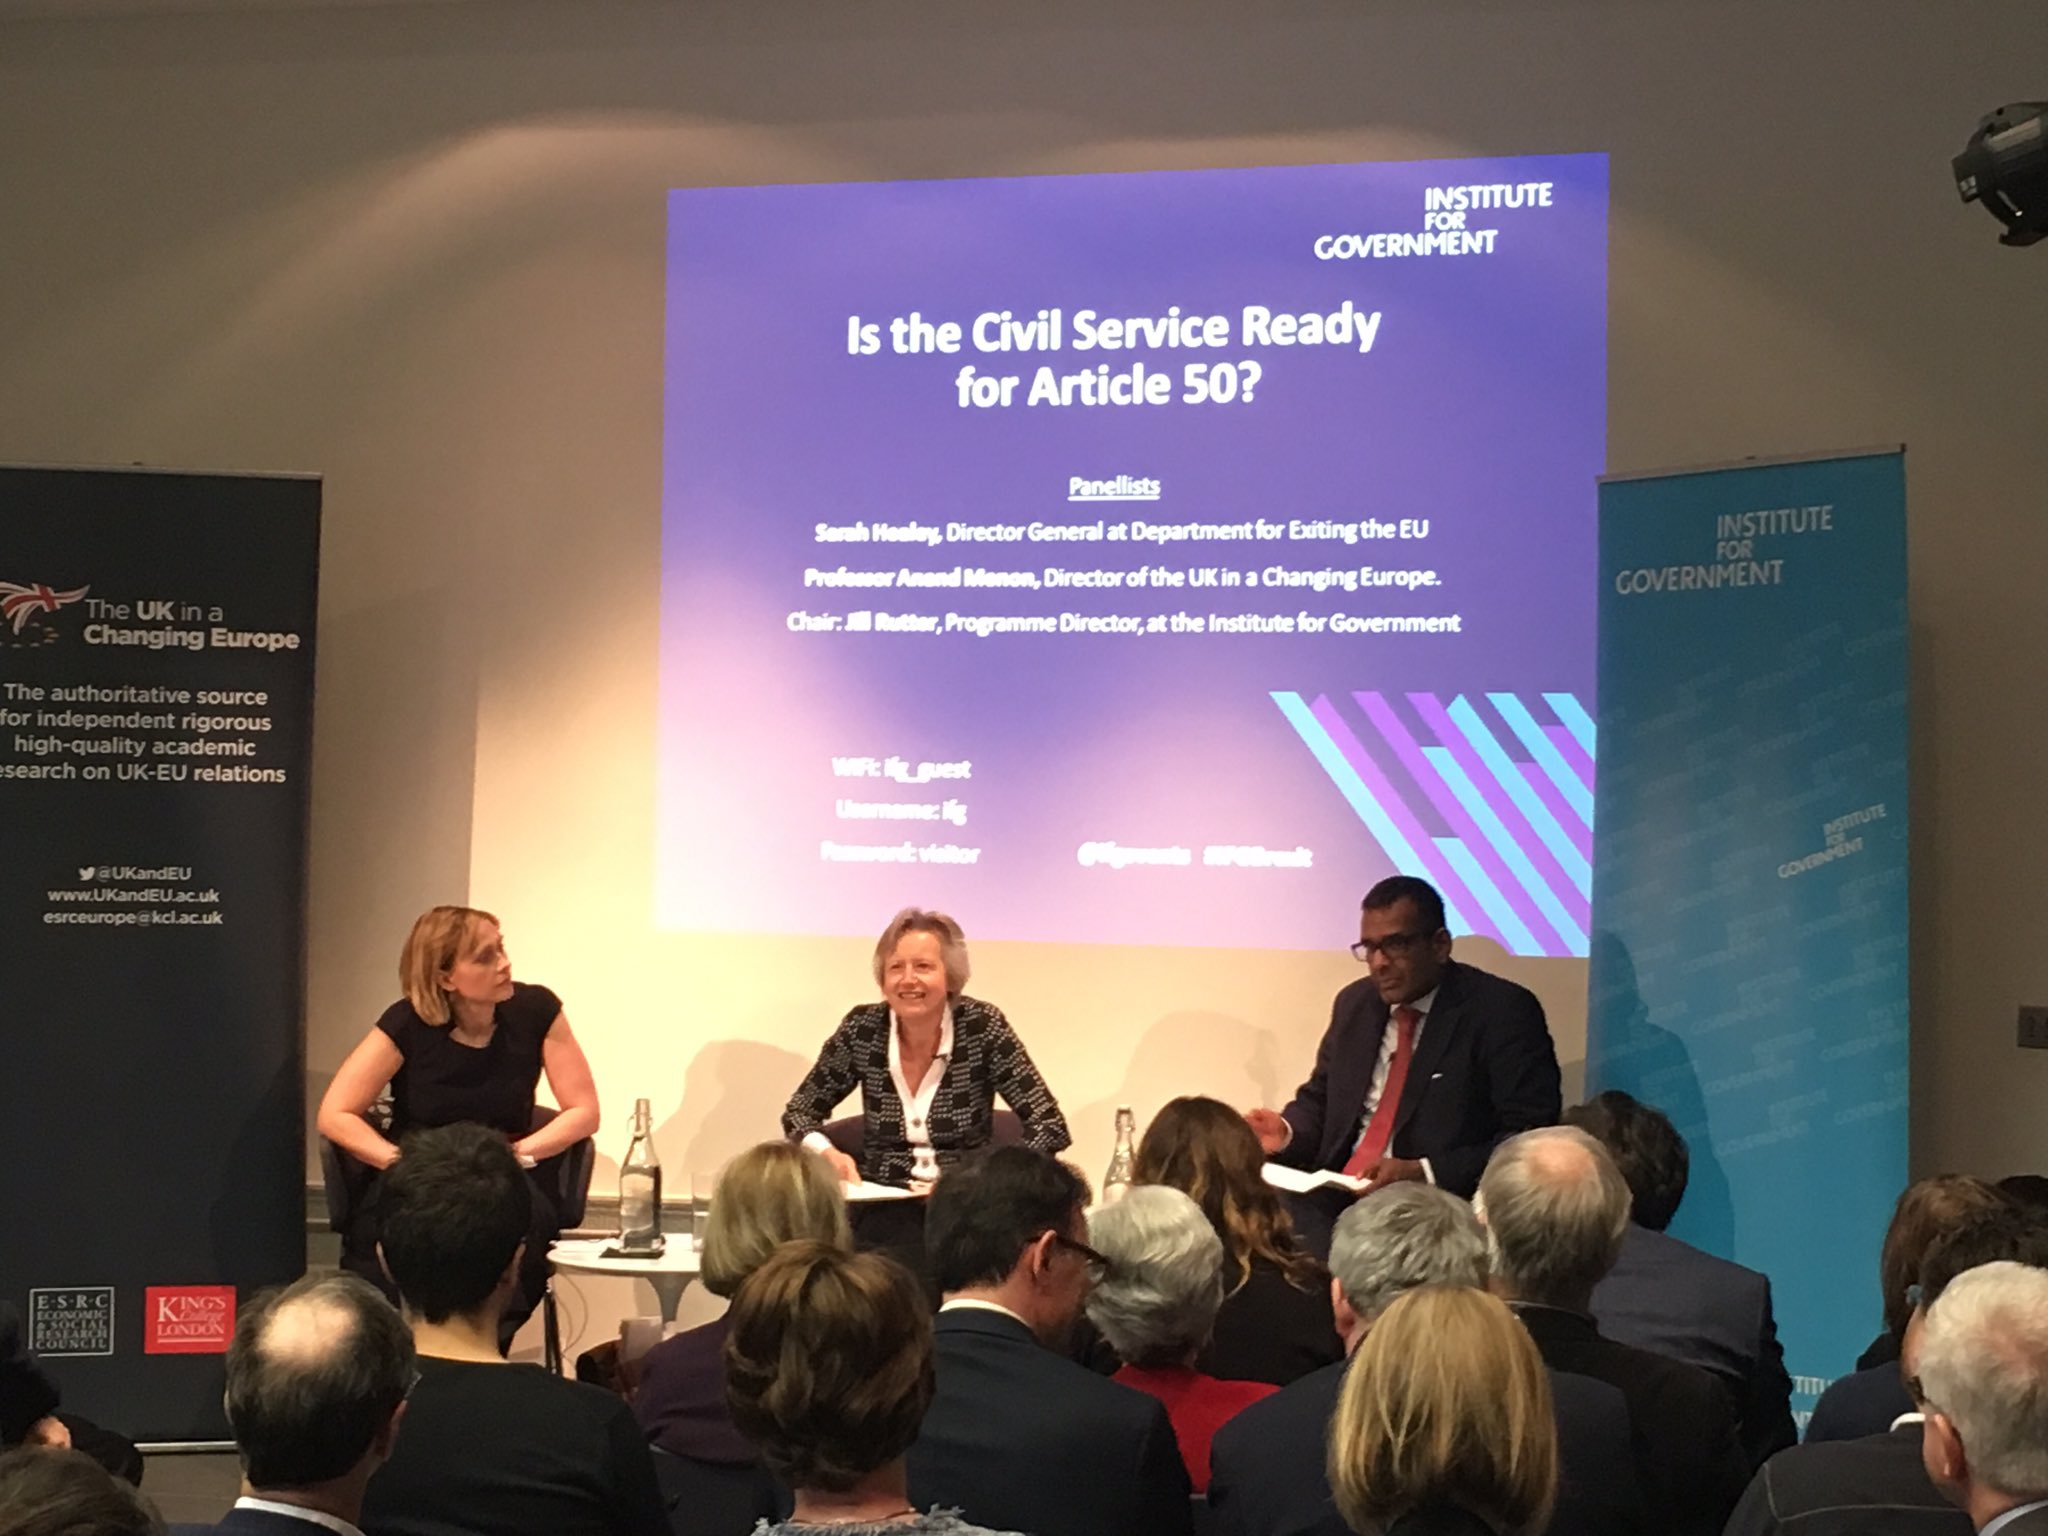 Our event with @ifgevents with @anandMenon1 @jillongovt and Sarah Healey @DexEUgov #ifgbrexit https://t.co/C1e8n7joLv